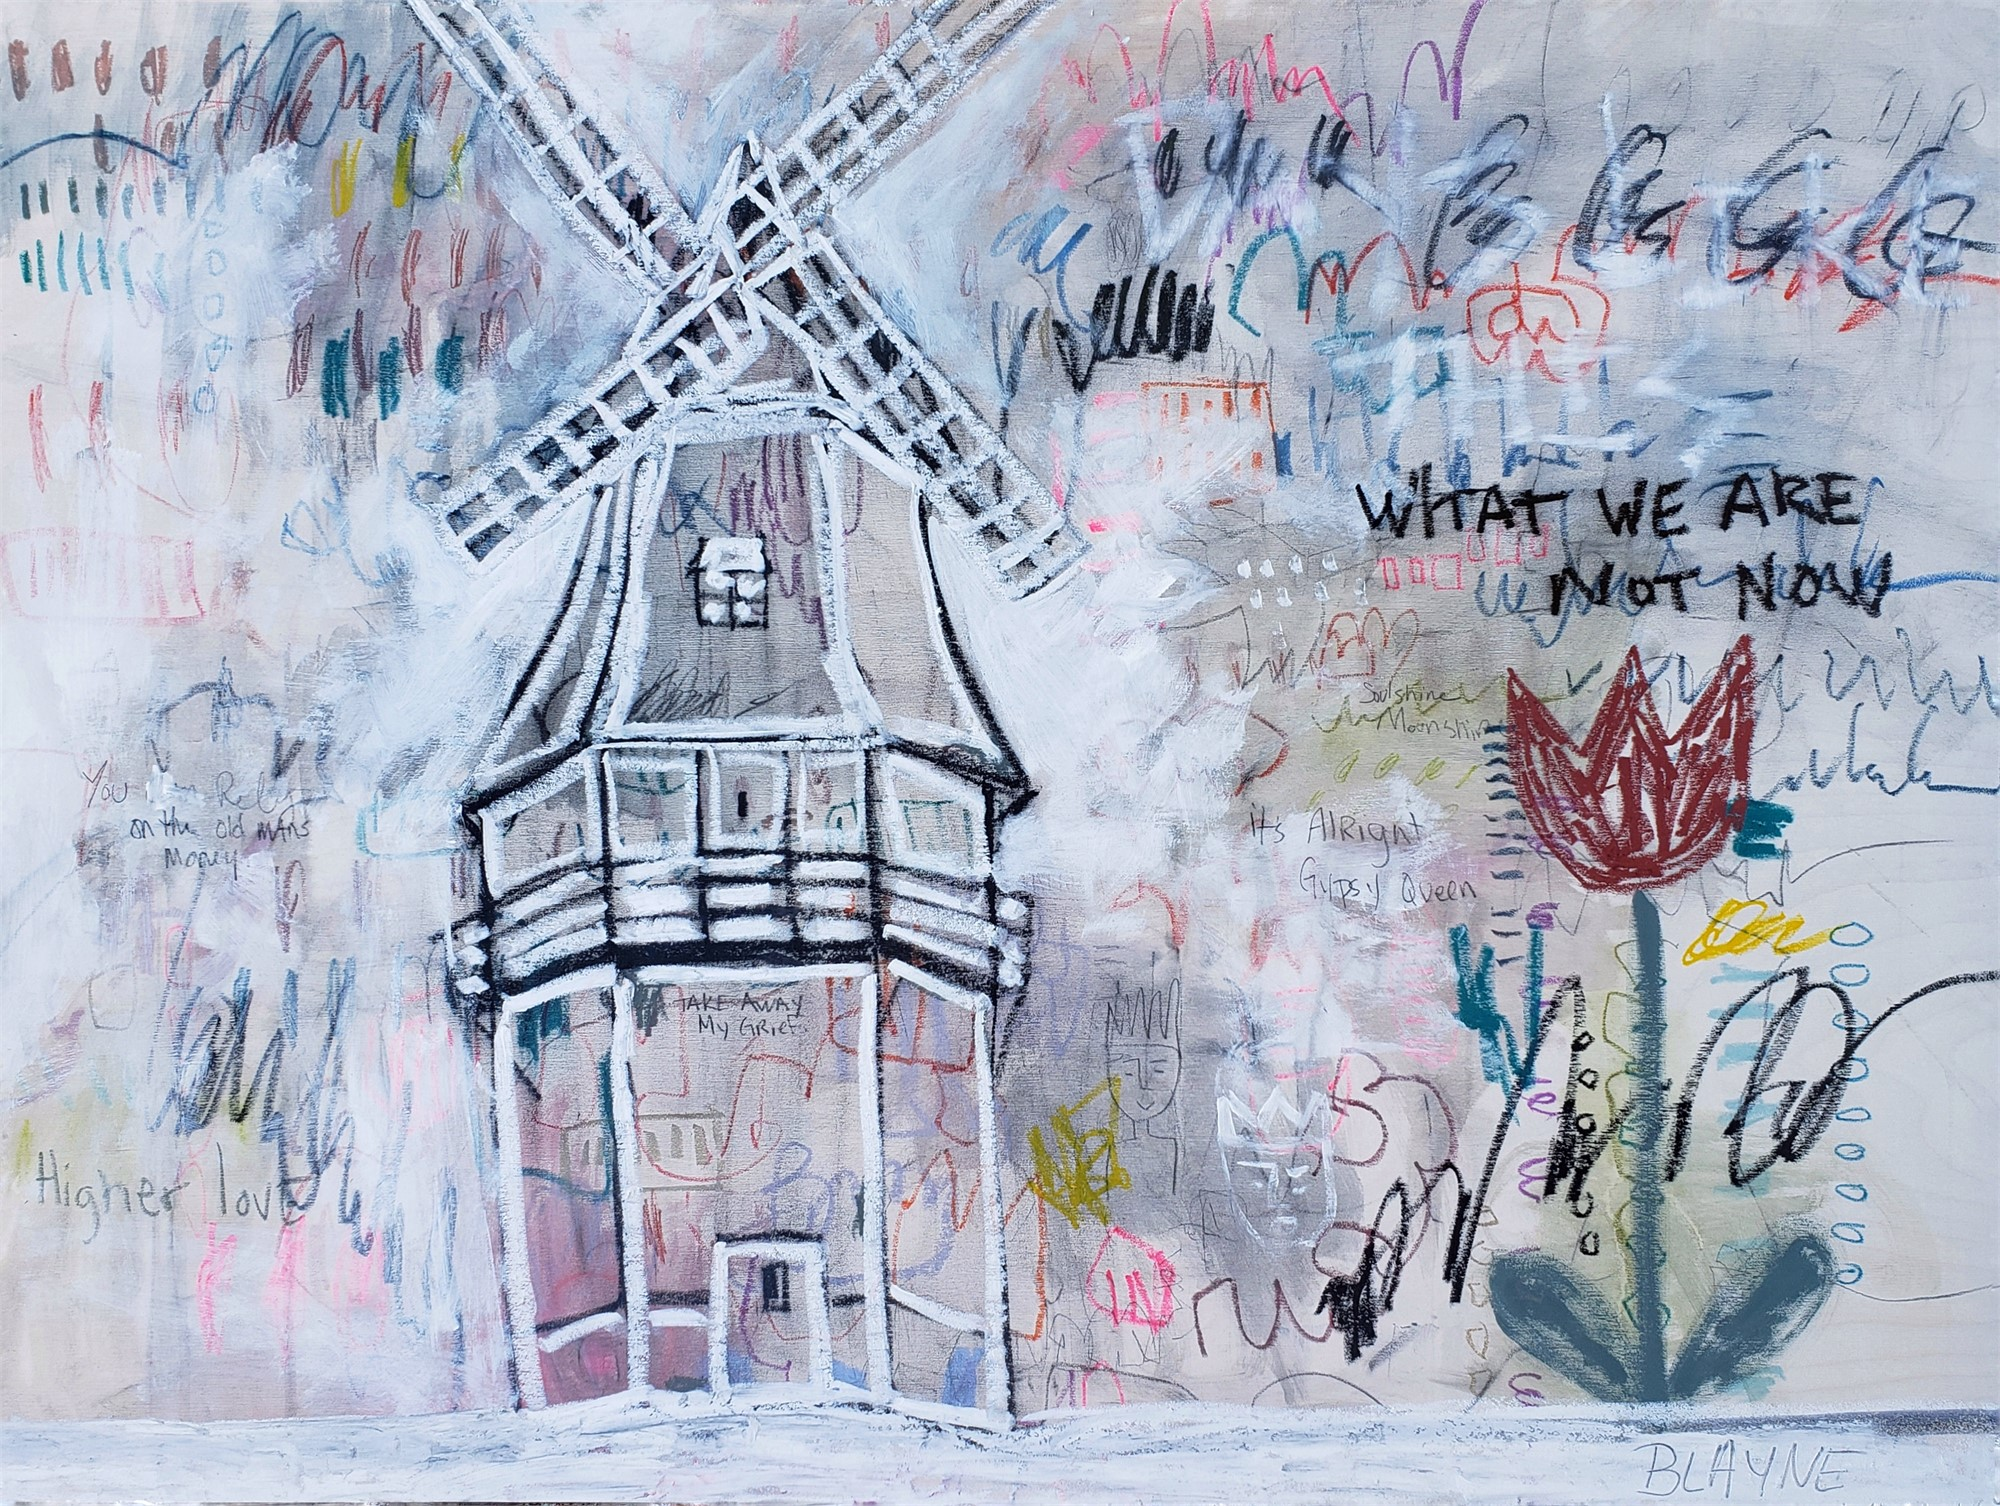 What We Are Not Now - 13x19 Signed Print (Including Shipping) by Blayne Macauley